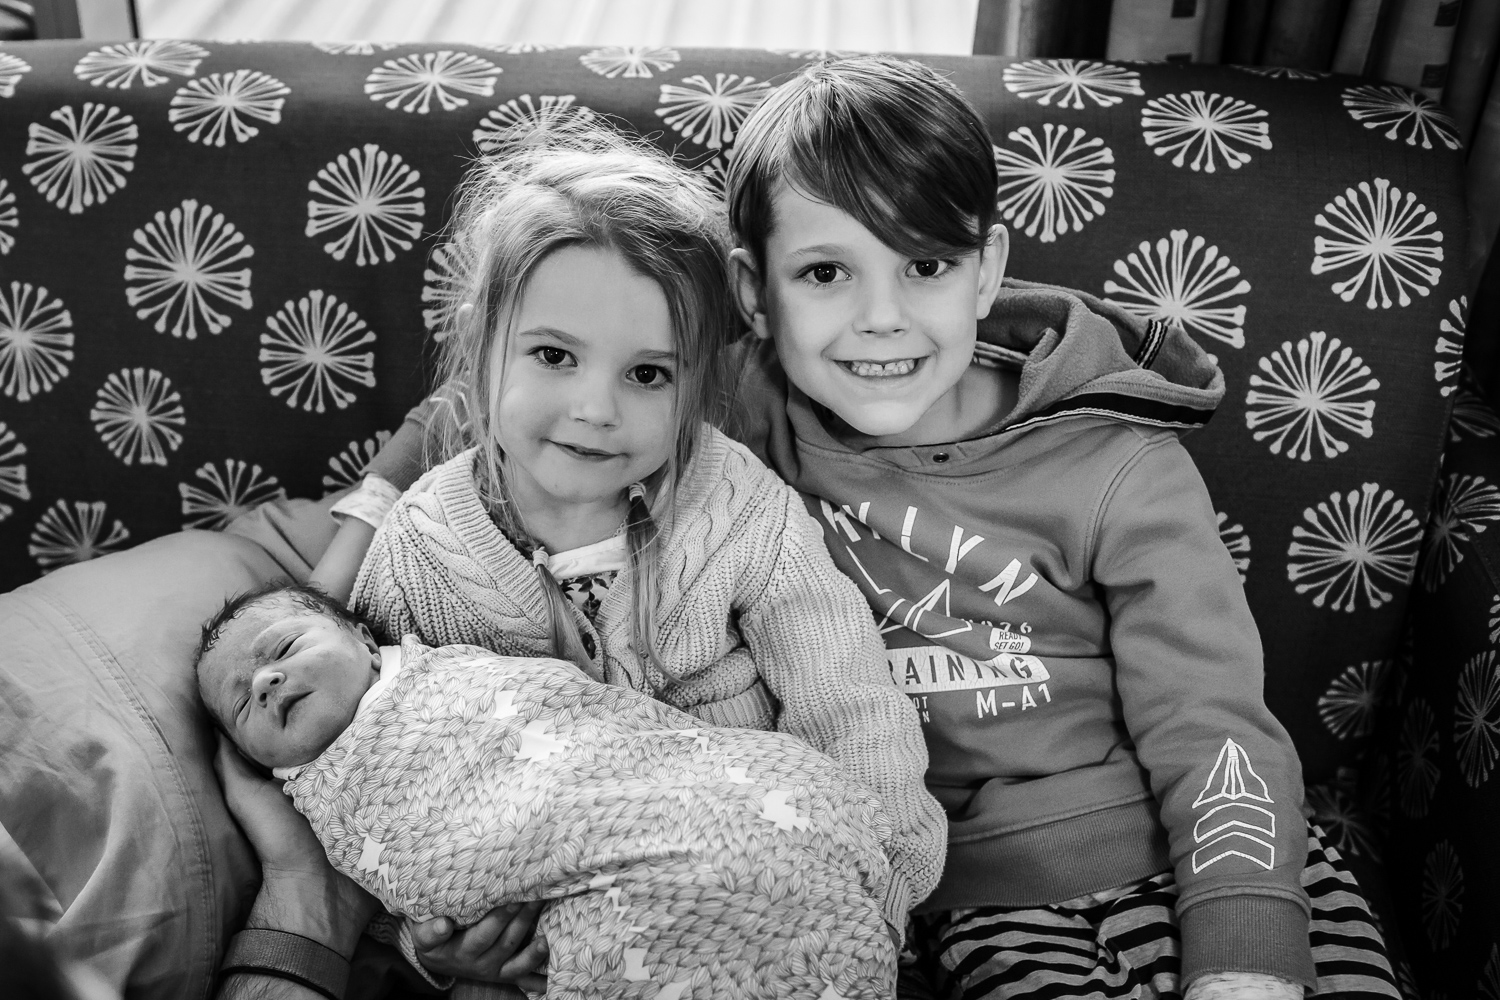 first photo of all three siblings sitting on couch